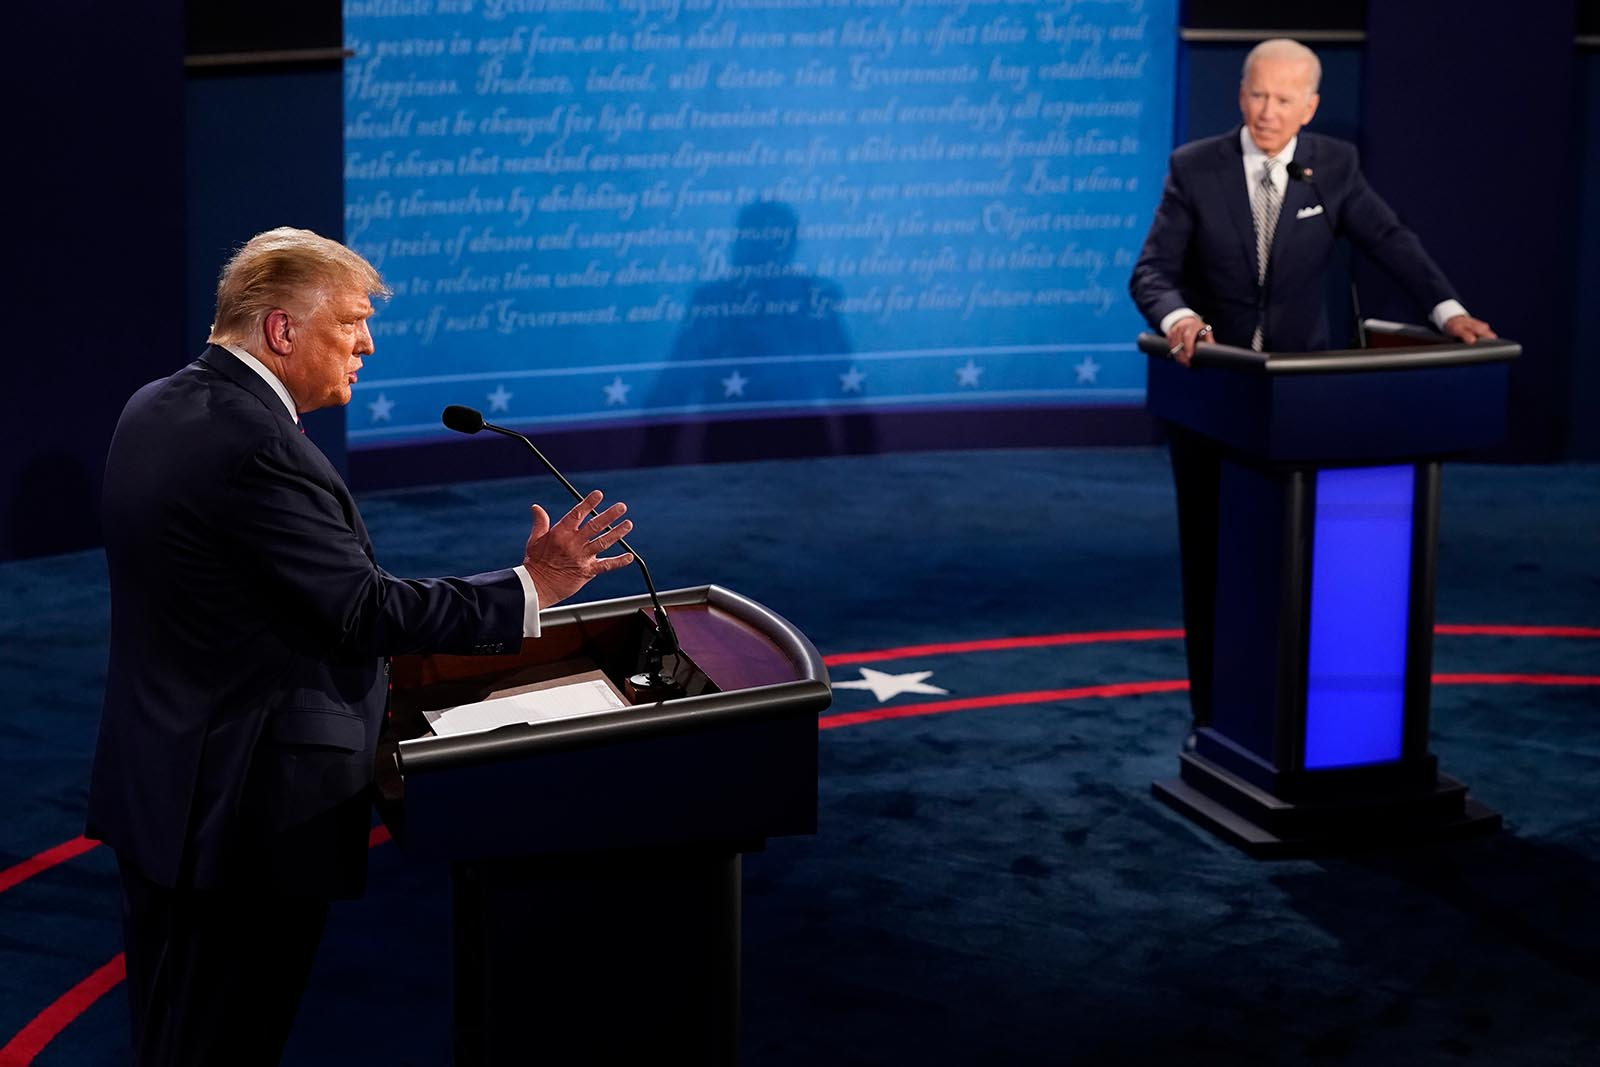 President Donald Trump speaks during the first presidential debate against former Vice President and Democratic presidential nominee Joe Biden.